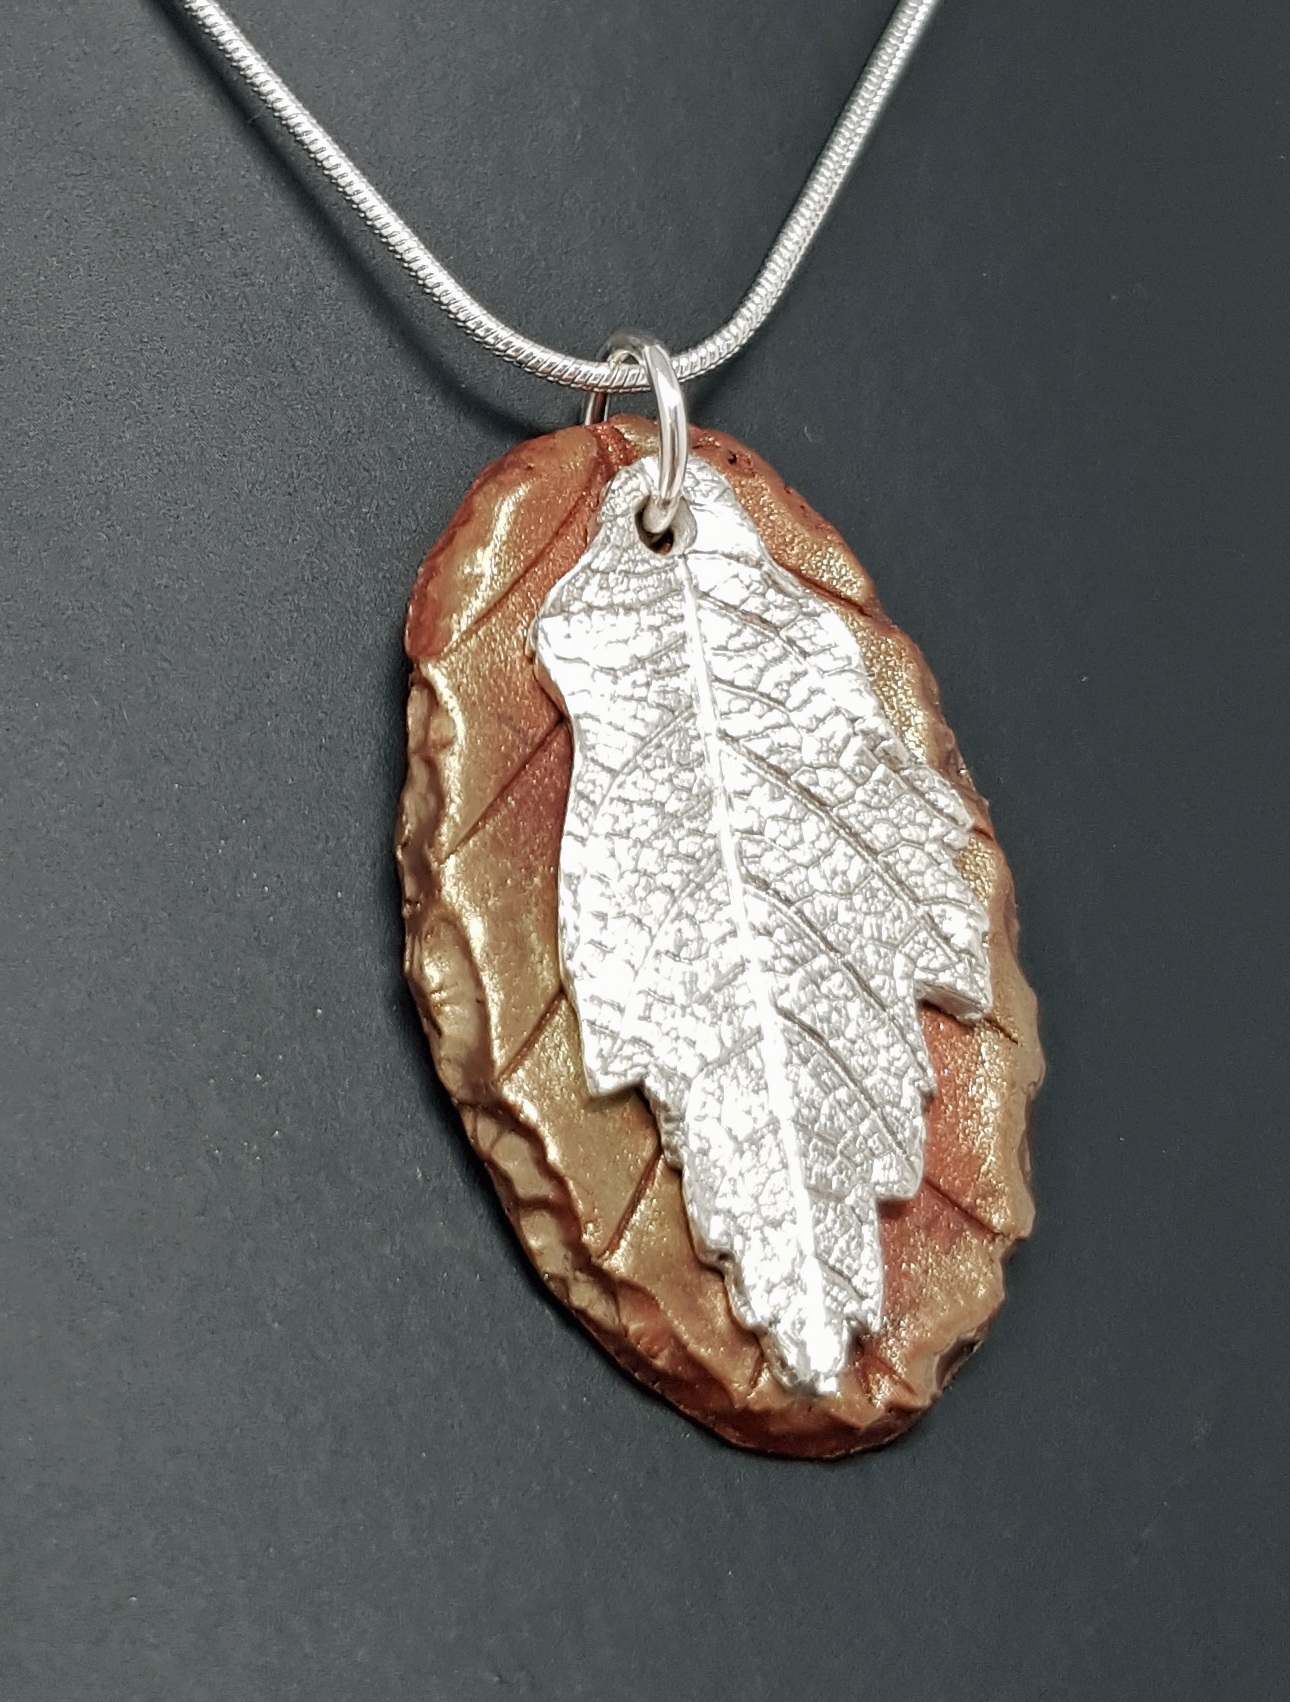 Jan's two-part Best of Both leaf pendant